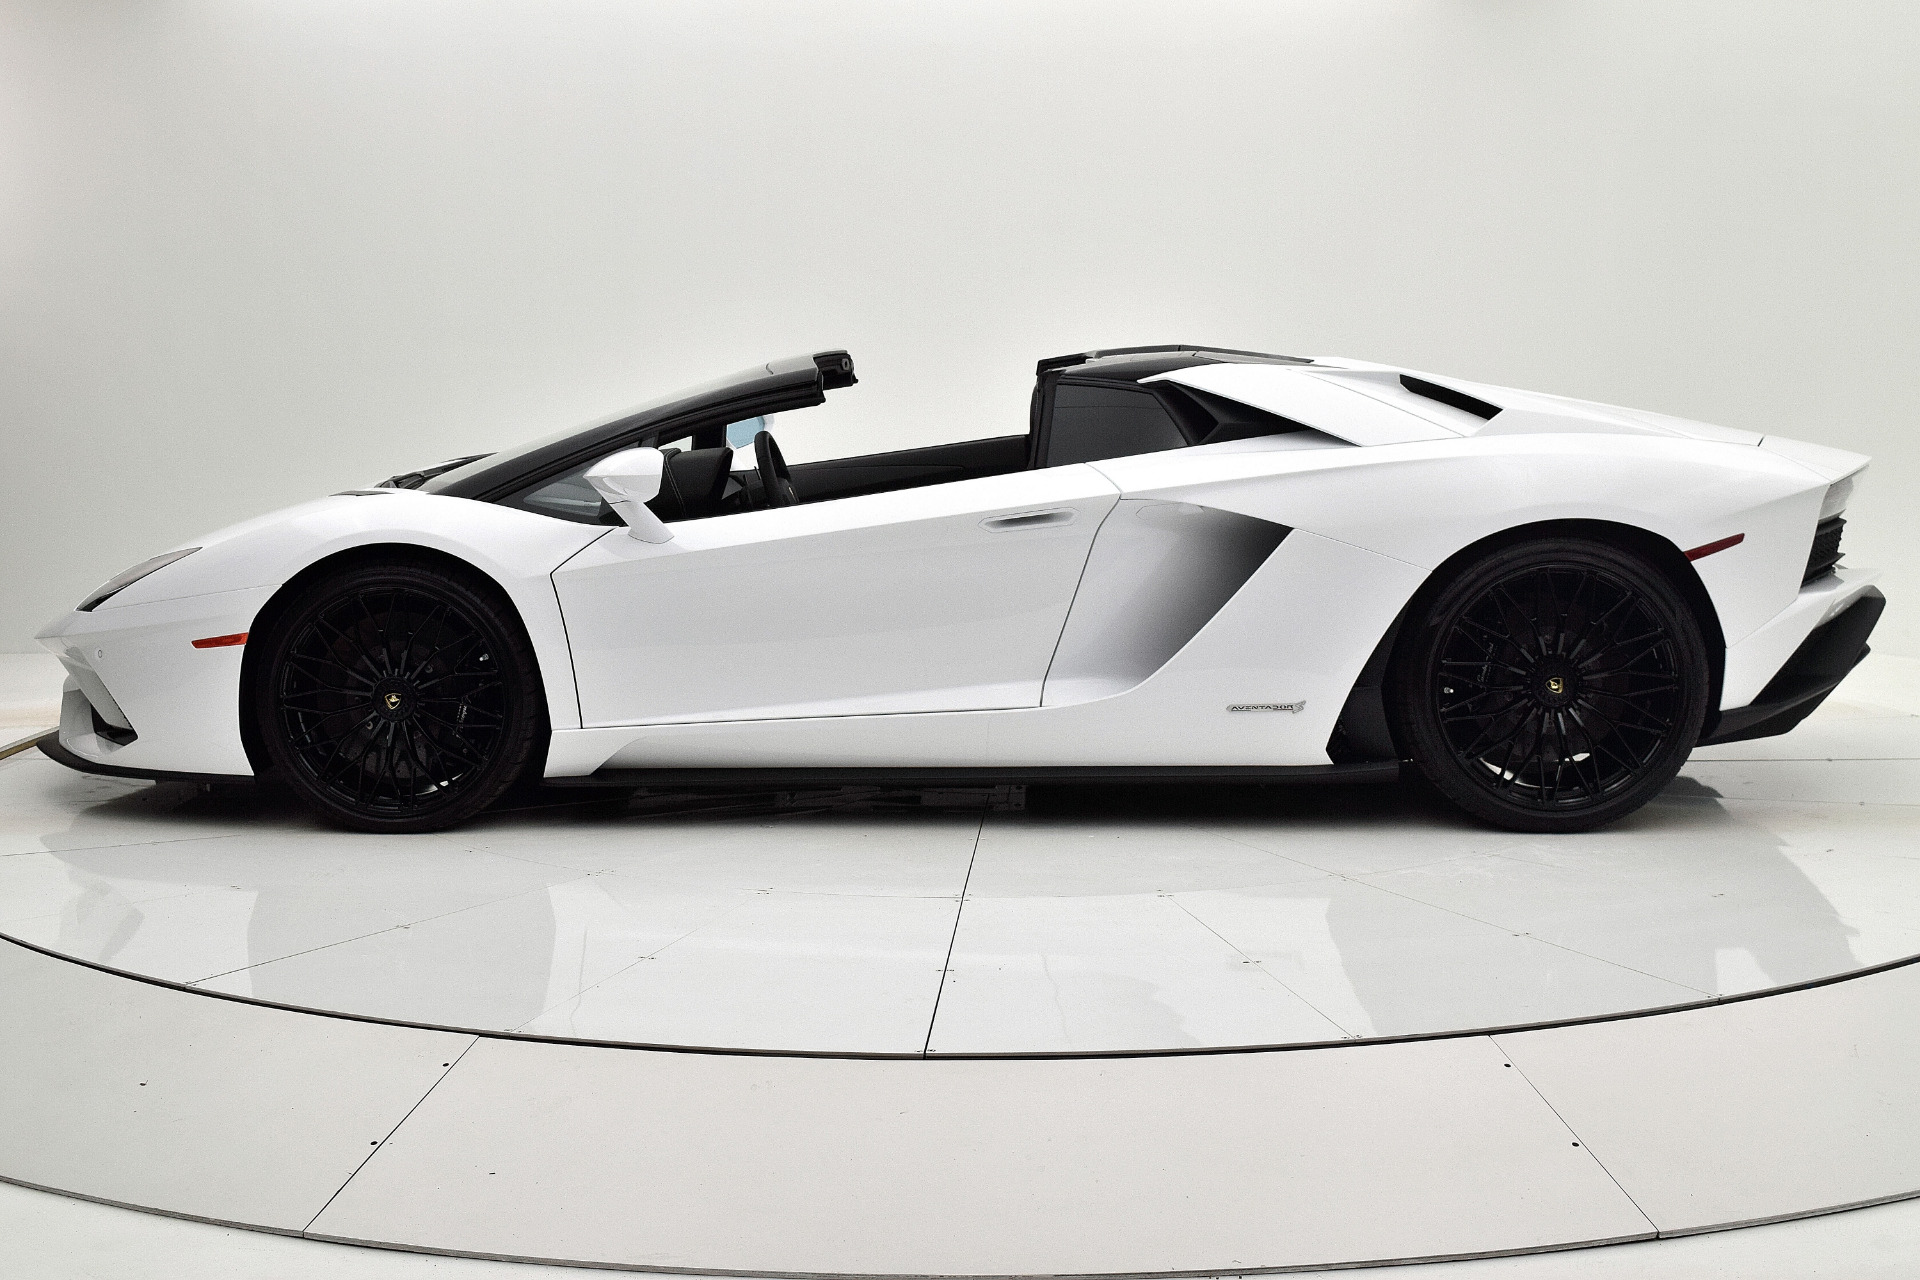 New 2019 Lamborghini Aventador S Roadster For Sale 525 017 F C Kerbeck Lamborghini Palmyra N J Stock 19l100